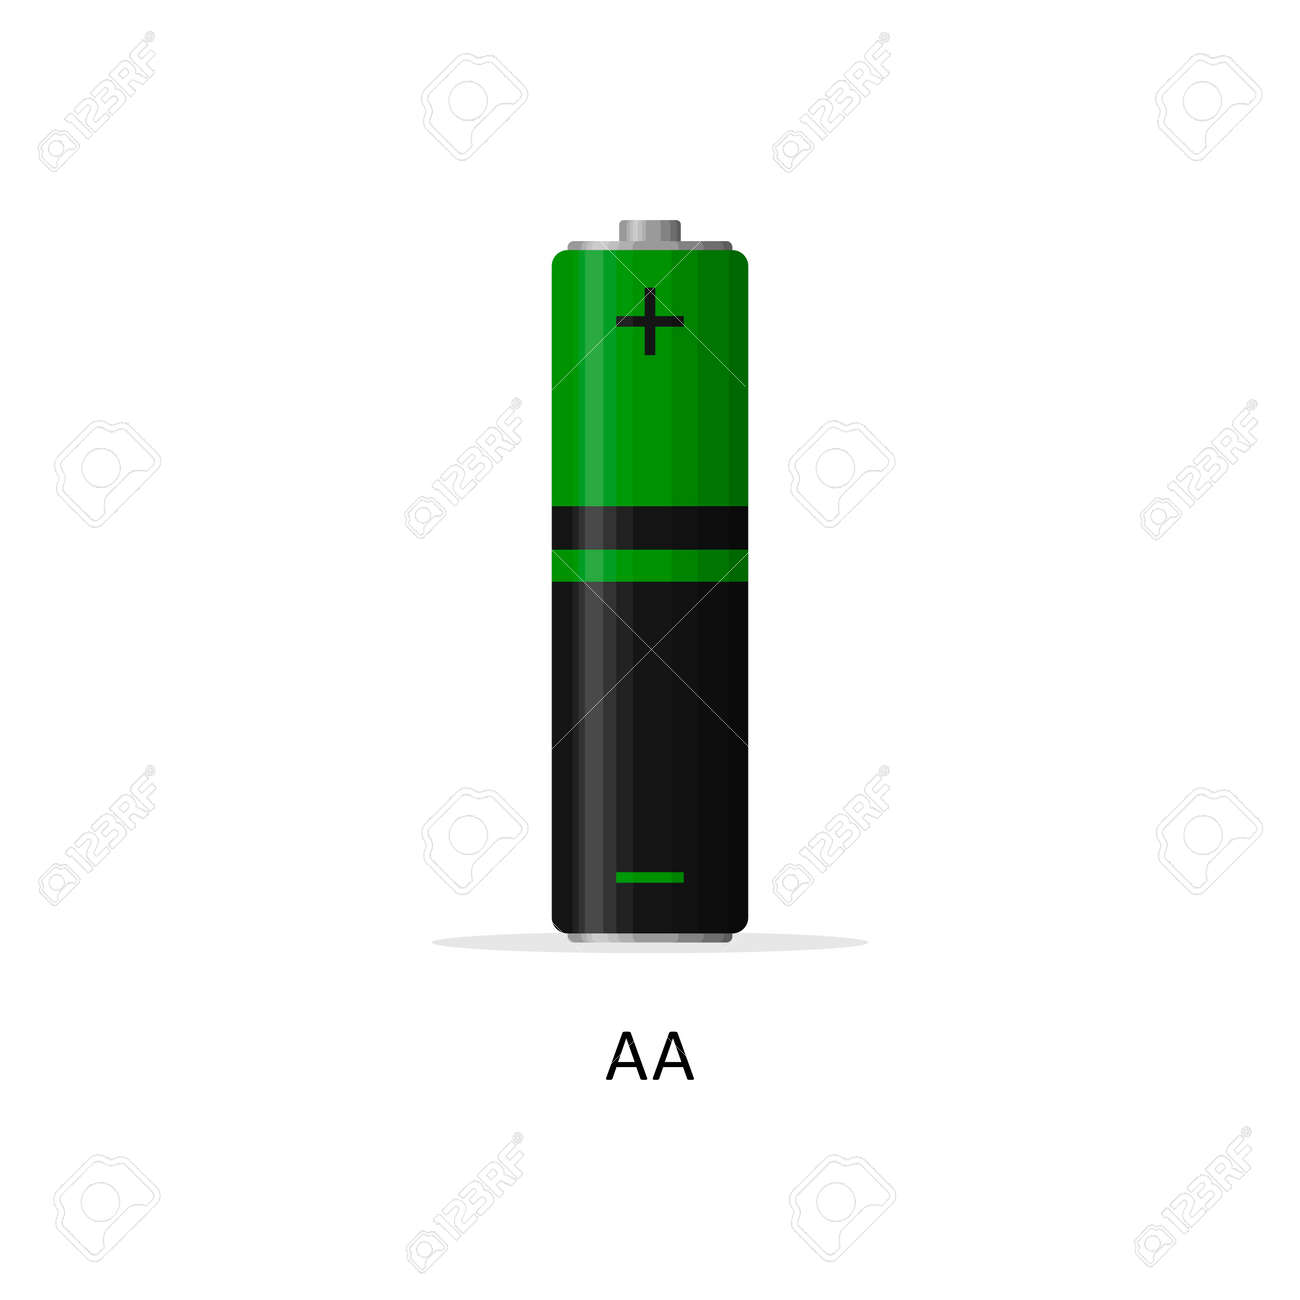 Alkaline battery AA isolated on white background. Rechargeable battery energy storage cells flat modern style. Vector illustration - 166023029